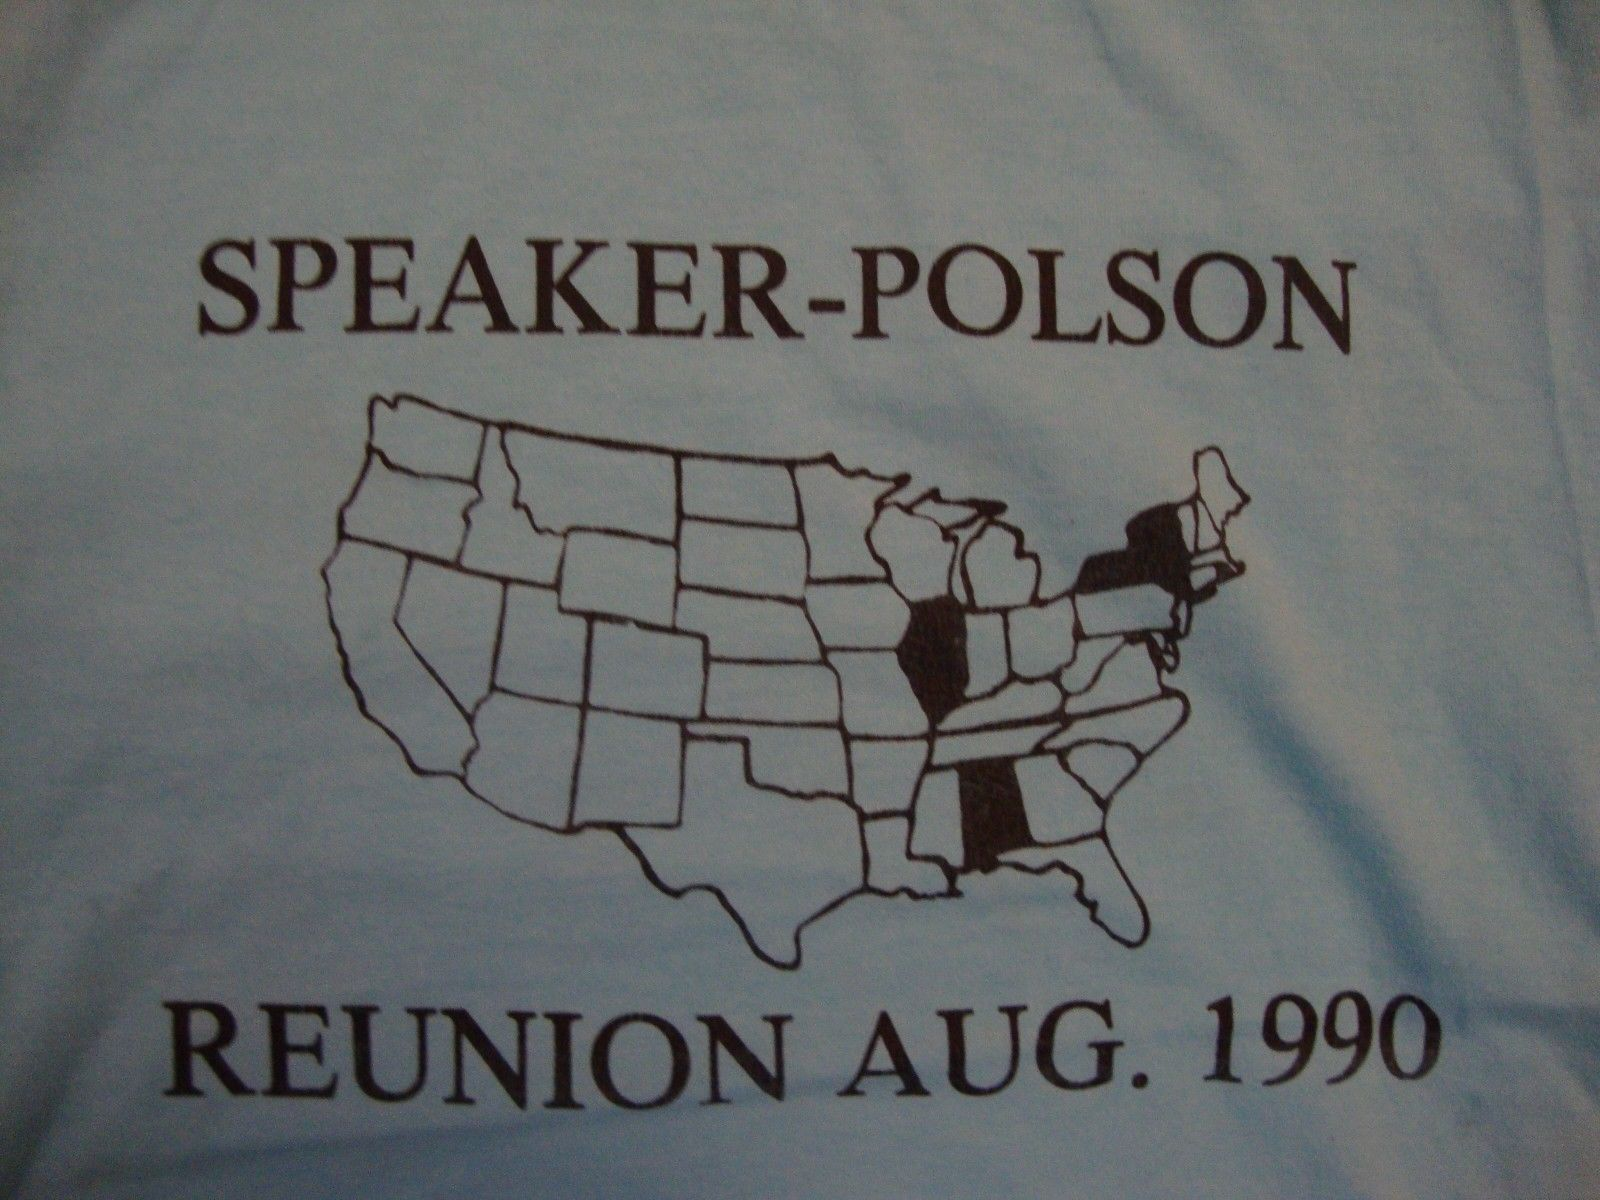 Primary image for Vintage Speaker-Polson Reunion Aug. 1990 Blue T Shirt Size S